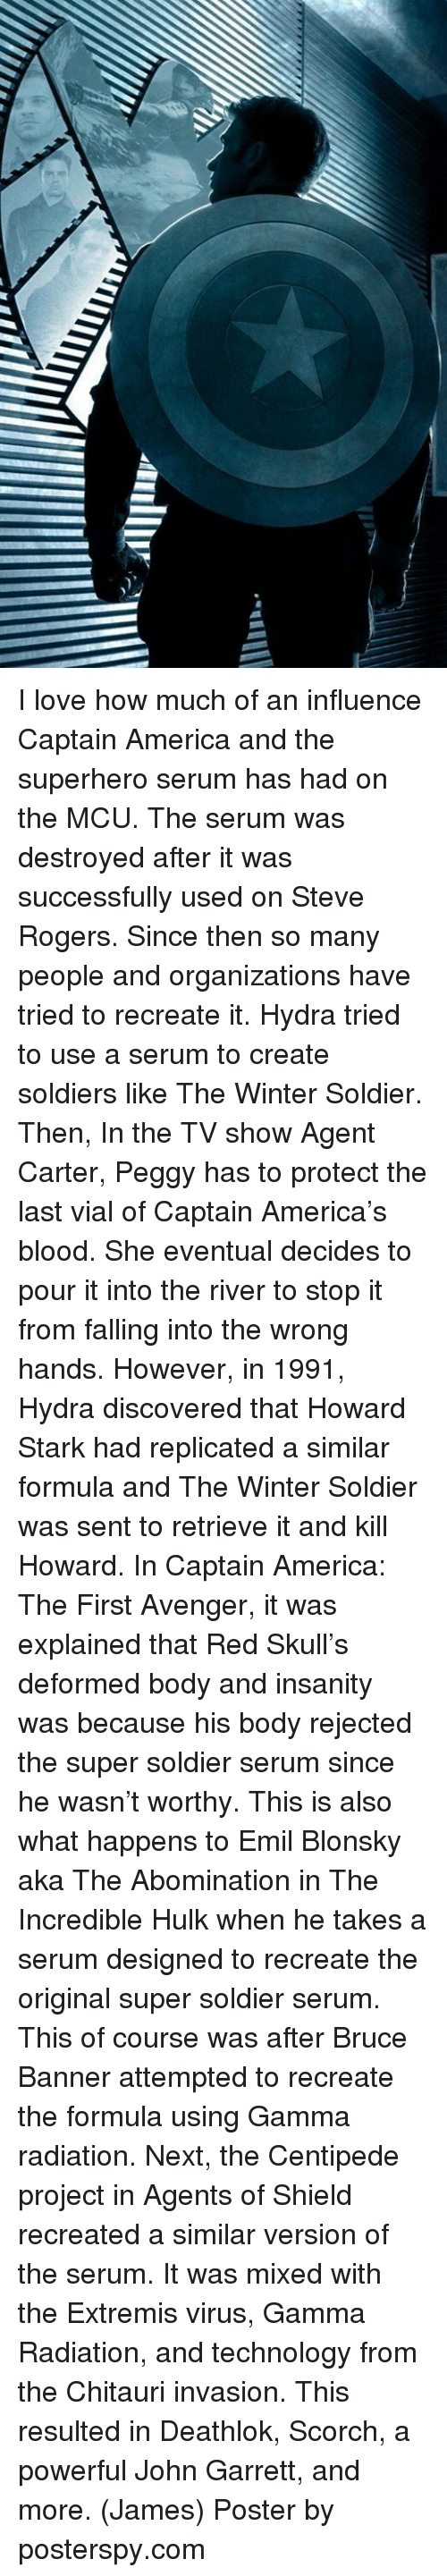 gamma: I love how much of an influence Captain America and the superhero serum has had on the MCU. The serum was destroyed after it was successfully used on Steve Rogers. Since then so many people and organizations have tried to recreate it.  Hydra tried to use a serum to create soldiers like The Winter Soldier. Then, In the TV show Agent Carter, Peggy has to protect the last vial of Captain America's blood. She eventual decides to pour it into the river to stop it from falling into the wrong hands. However, in 1991, Hydra discovered that Howard Stark had replicated a similar formula and The Winter Soldier was sent to retrieve it and kill Howard.   In Captain America: The First Avenger, it was explained that Red Skull's deformed body and insanity was because his body rejected the super soldier serum since he wasn't worthy. This is also what happens to Emil Blonsky aka The Abomination in The Incredible Hulk when he takes a serum designed to recreate the original super soldier serum. This of course was after Bruce Banner attempted to recreate the formula using Gamma radiation.   Next, the Centipede project in Agents of Shield recreated a similar version of the serum. It was mixed with the Extremis virus, Gamma Radiation, and technology from the Chitauri invasion. This resulted in Deathlok, Scorch, a powerful John Garrett, and more.  (James)  Poster by posterspy.com